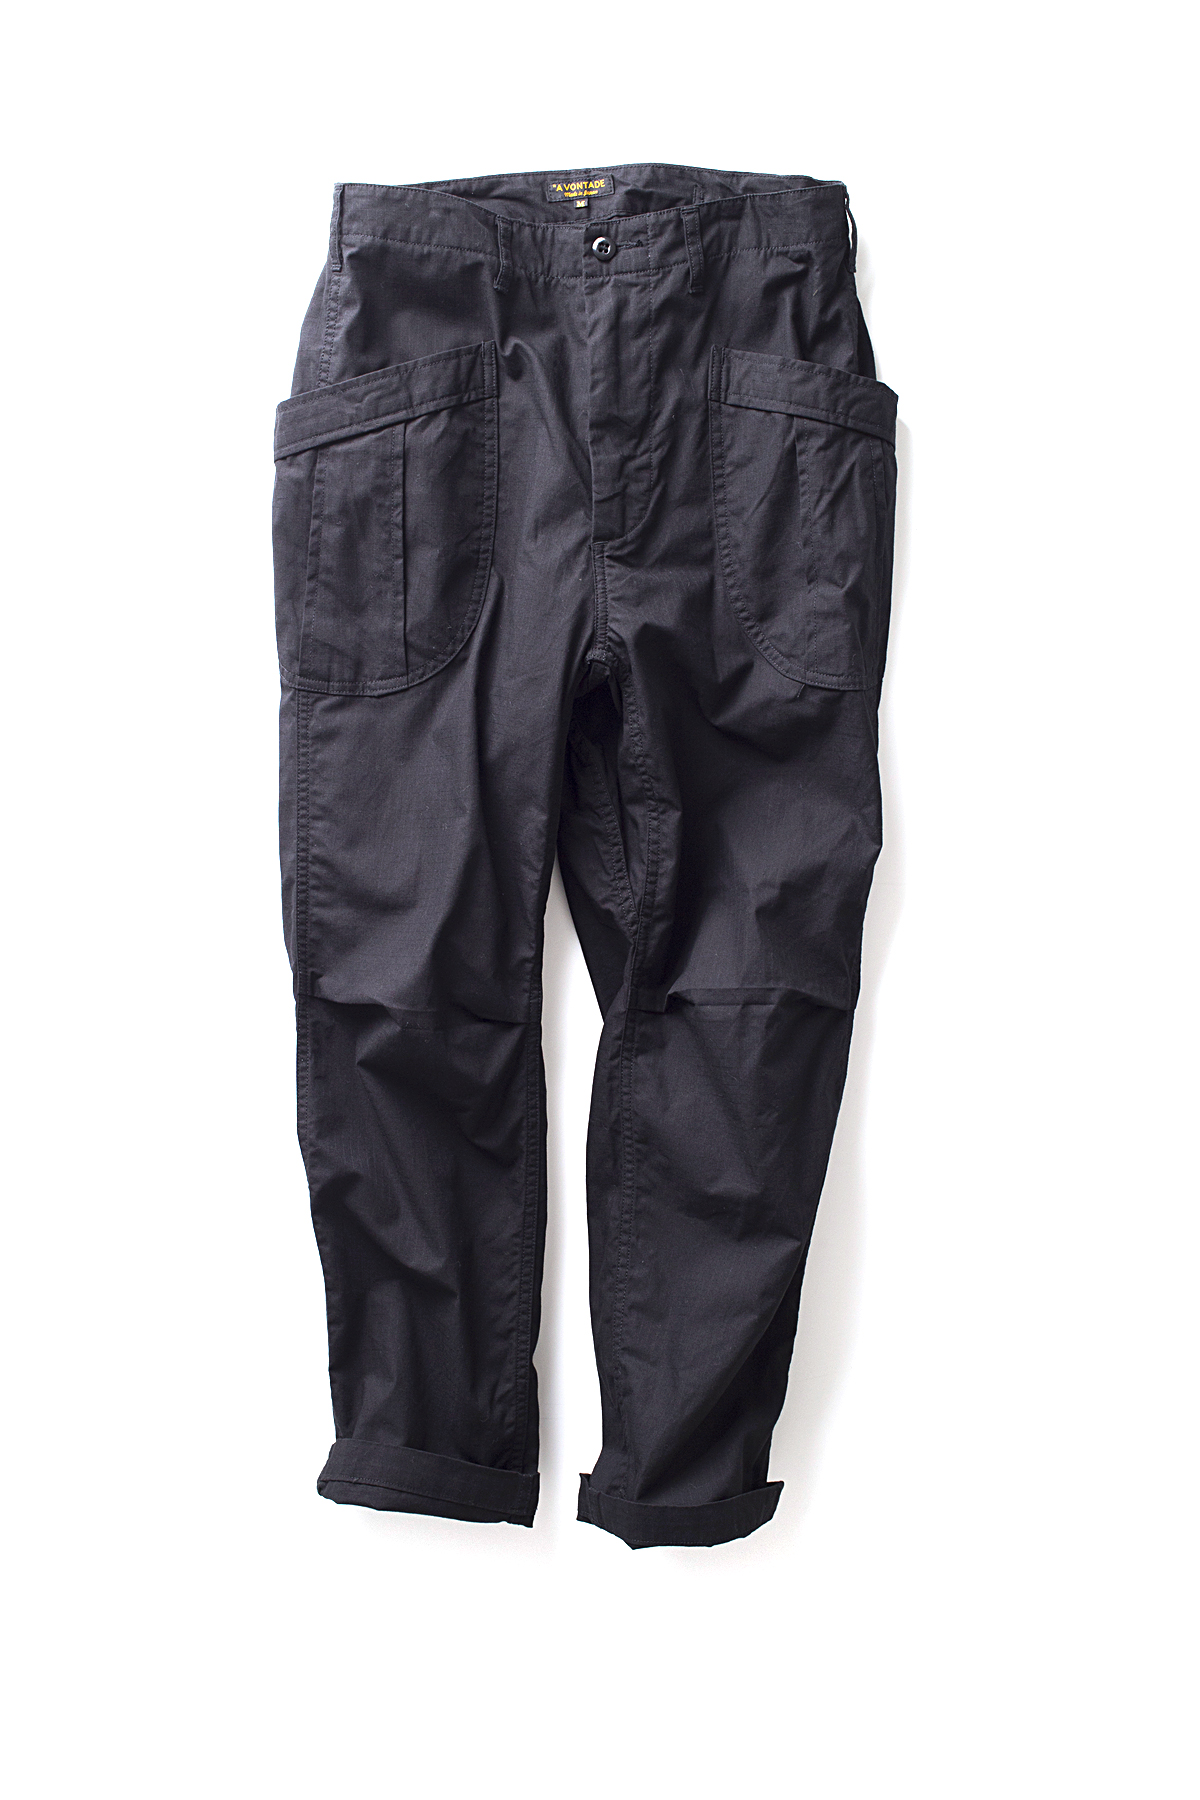 A vontade : Fatigue Trousers Ripstop (Black)